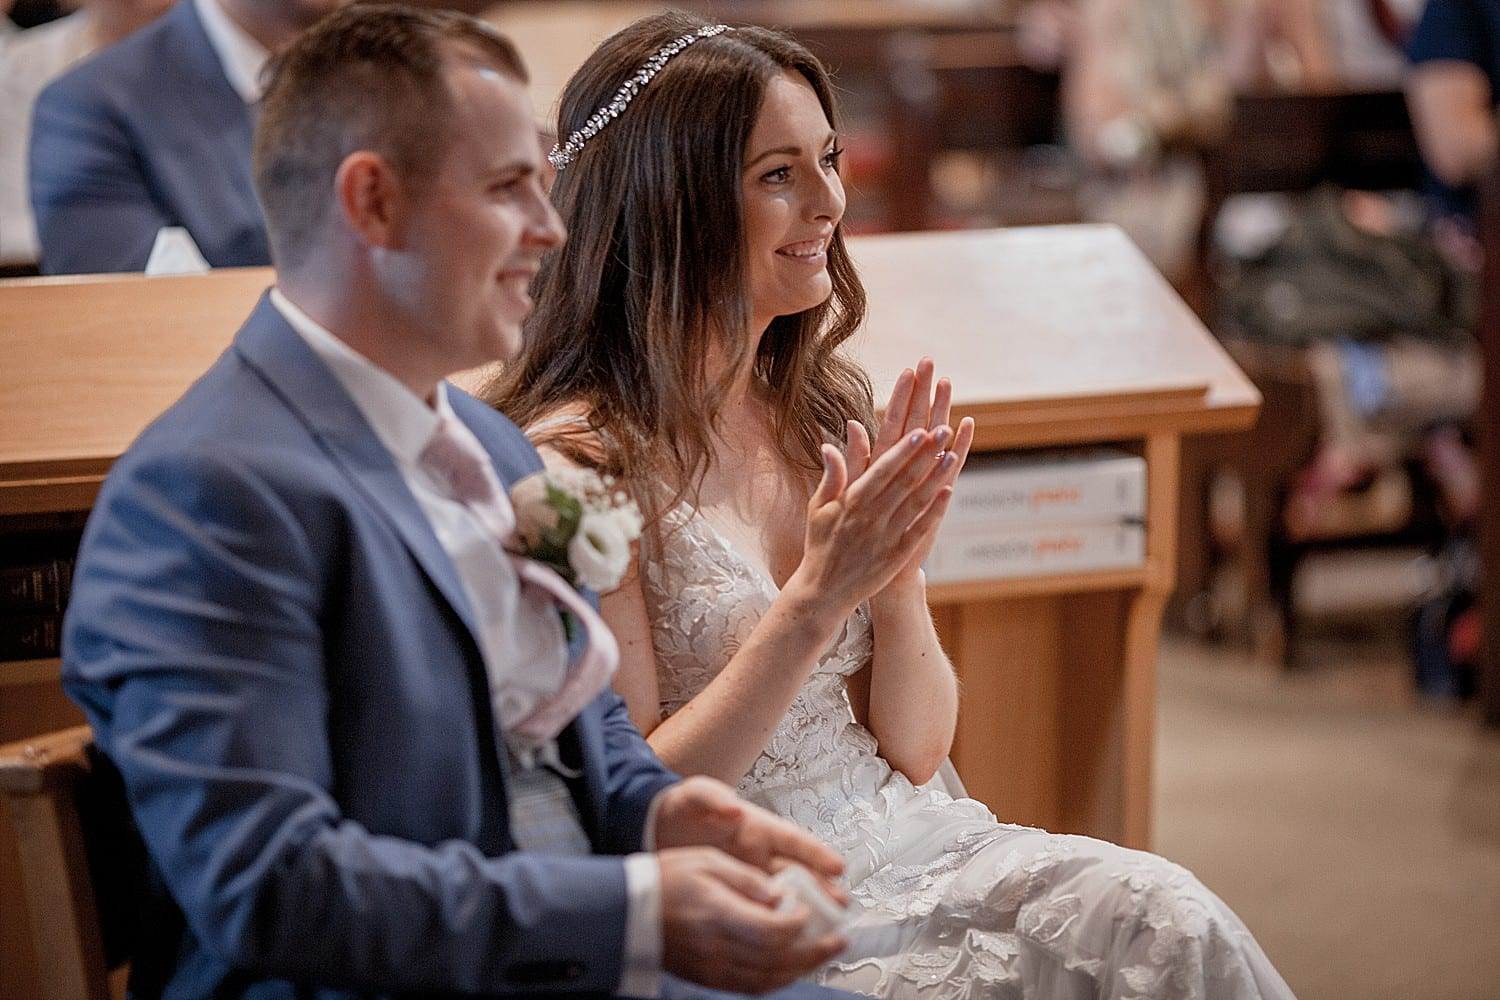 Bride and groom applaude at church wedding